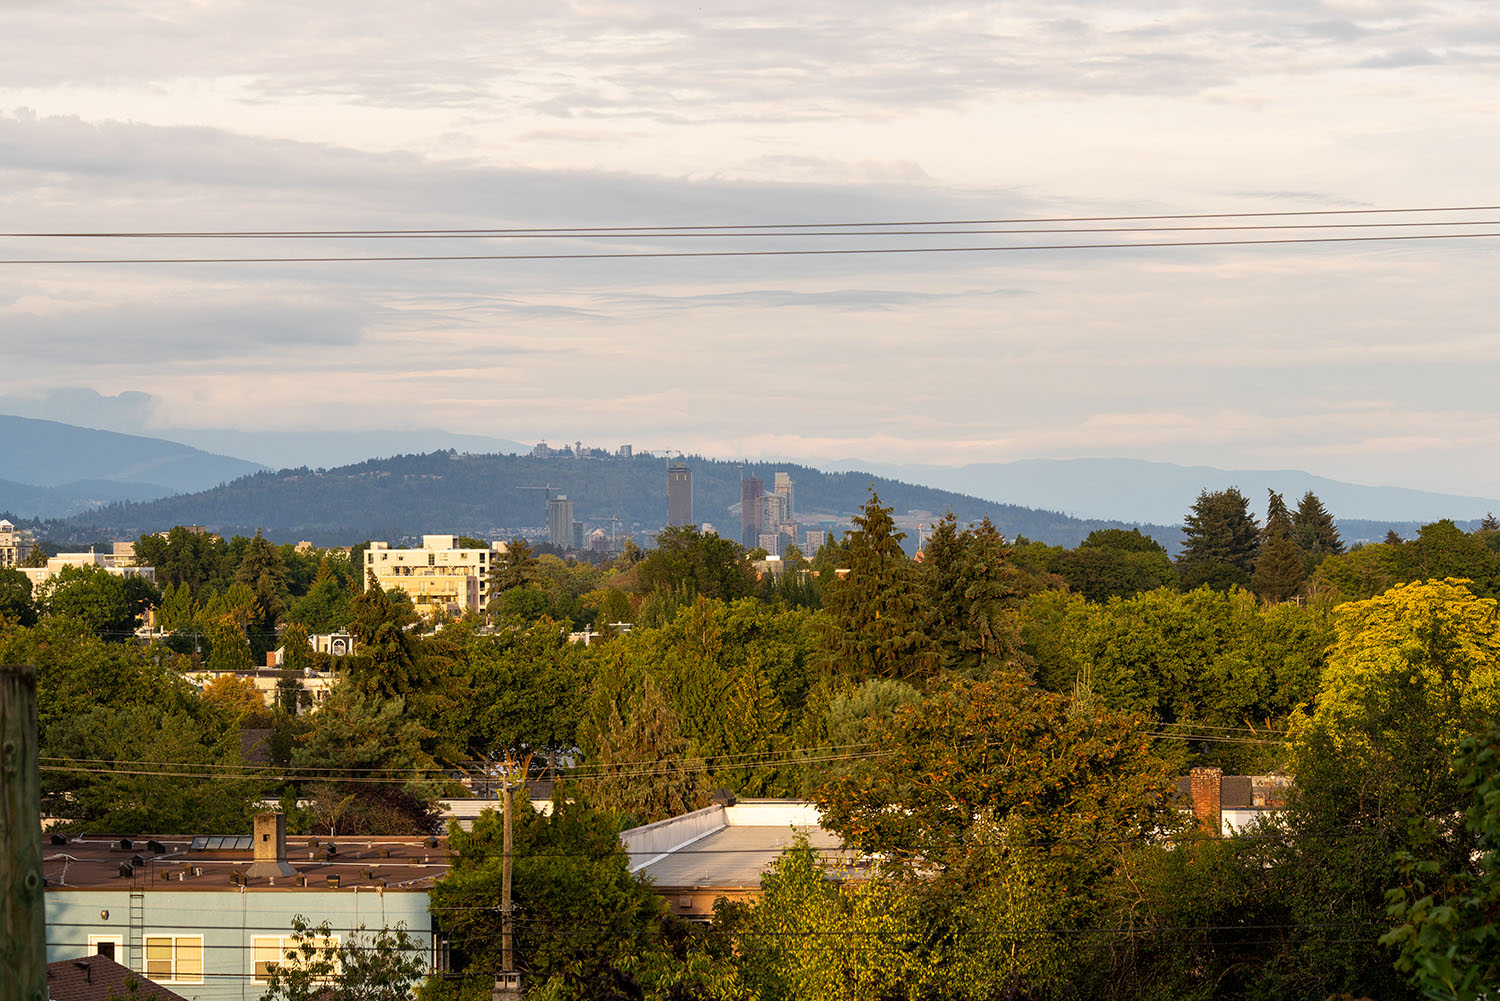 City & Mountain View - Shaughnessy - 1098 Wolfe Avenue, Vancouver, BC